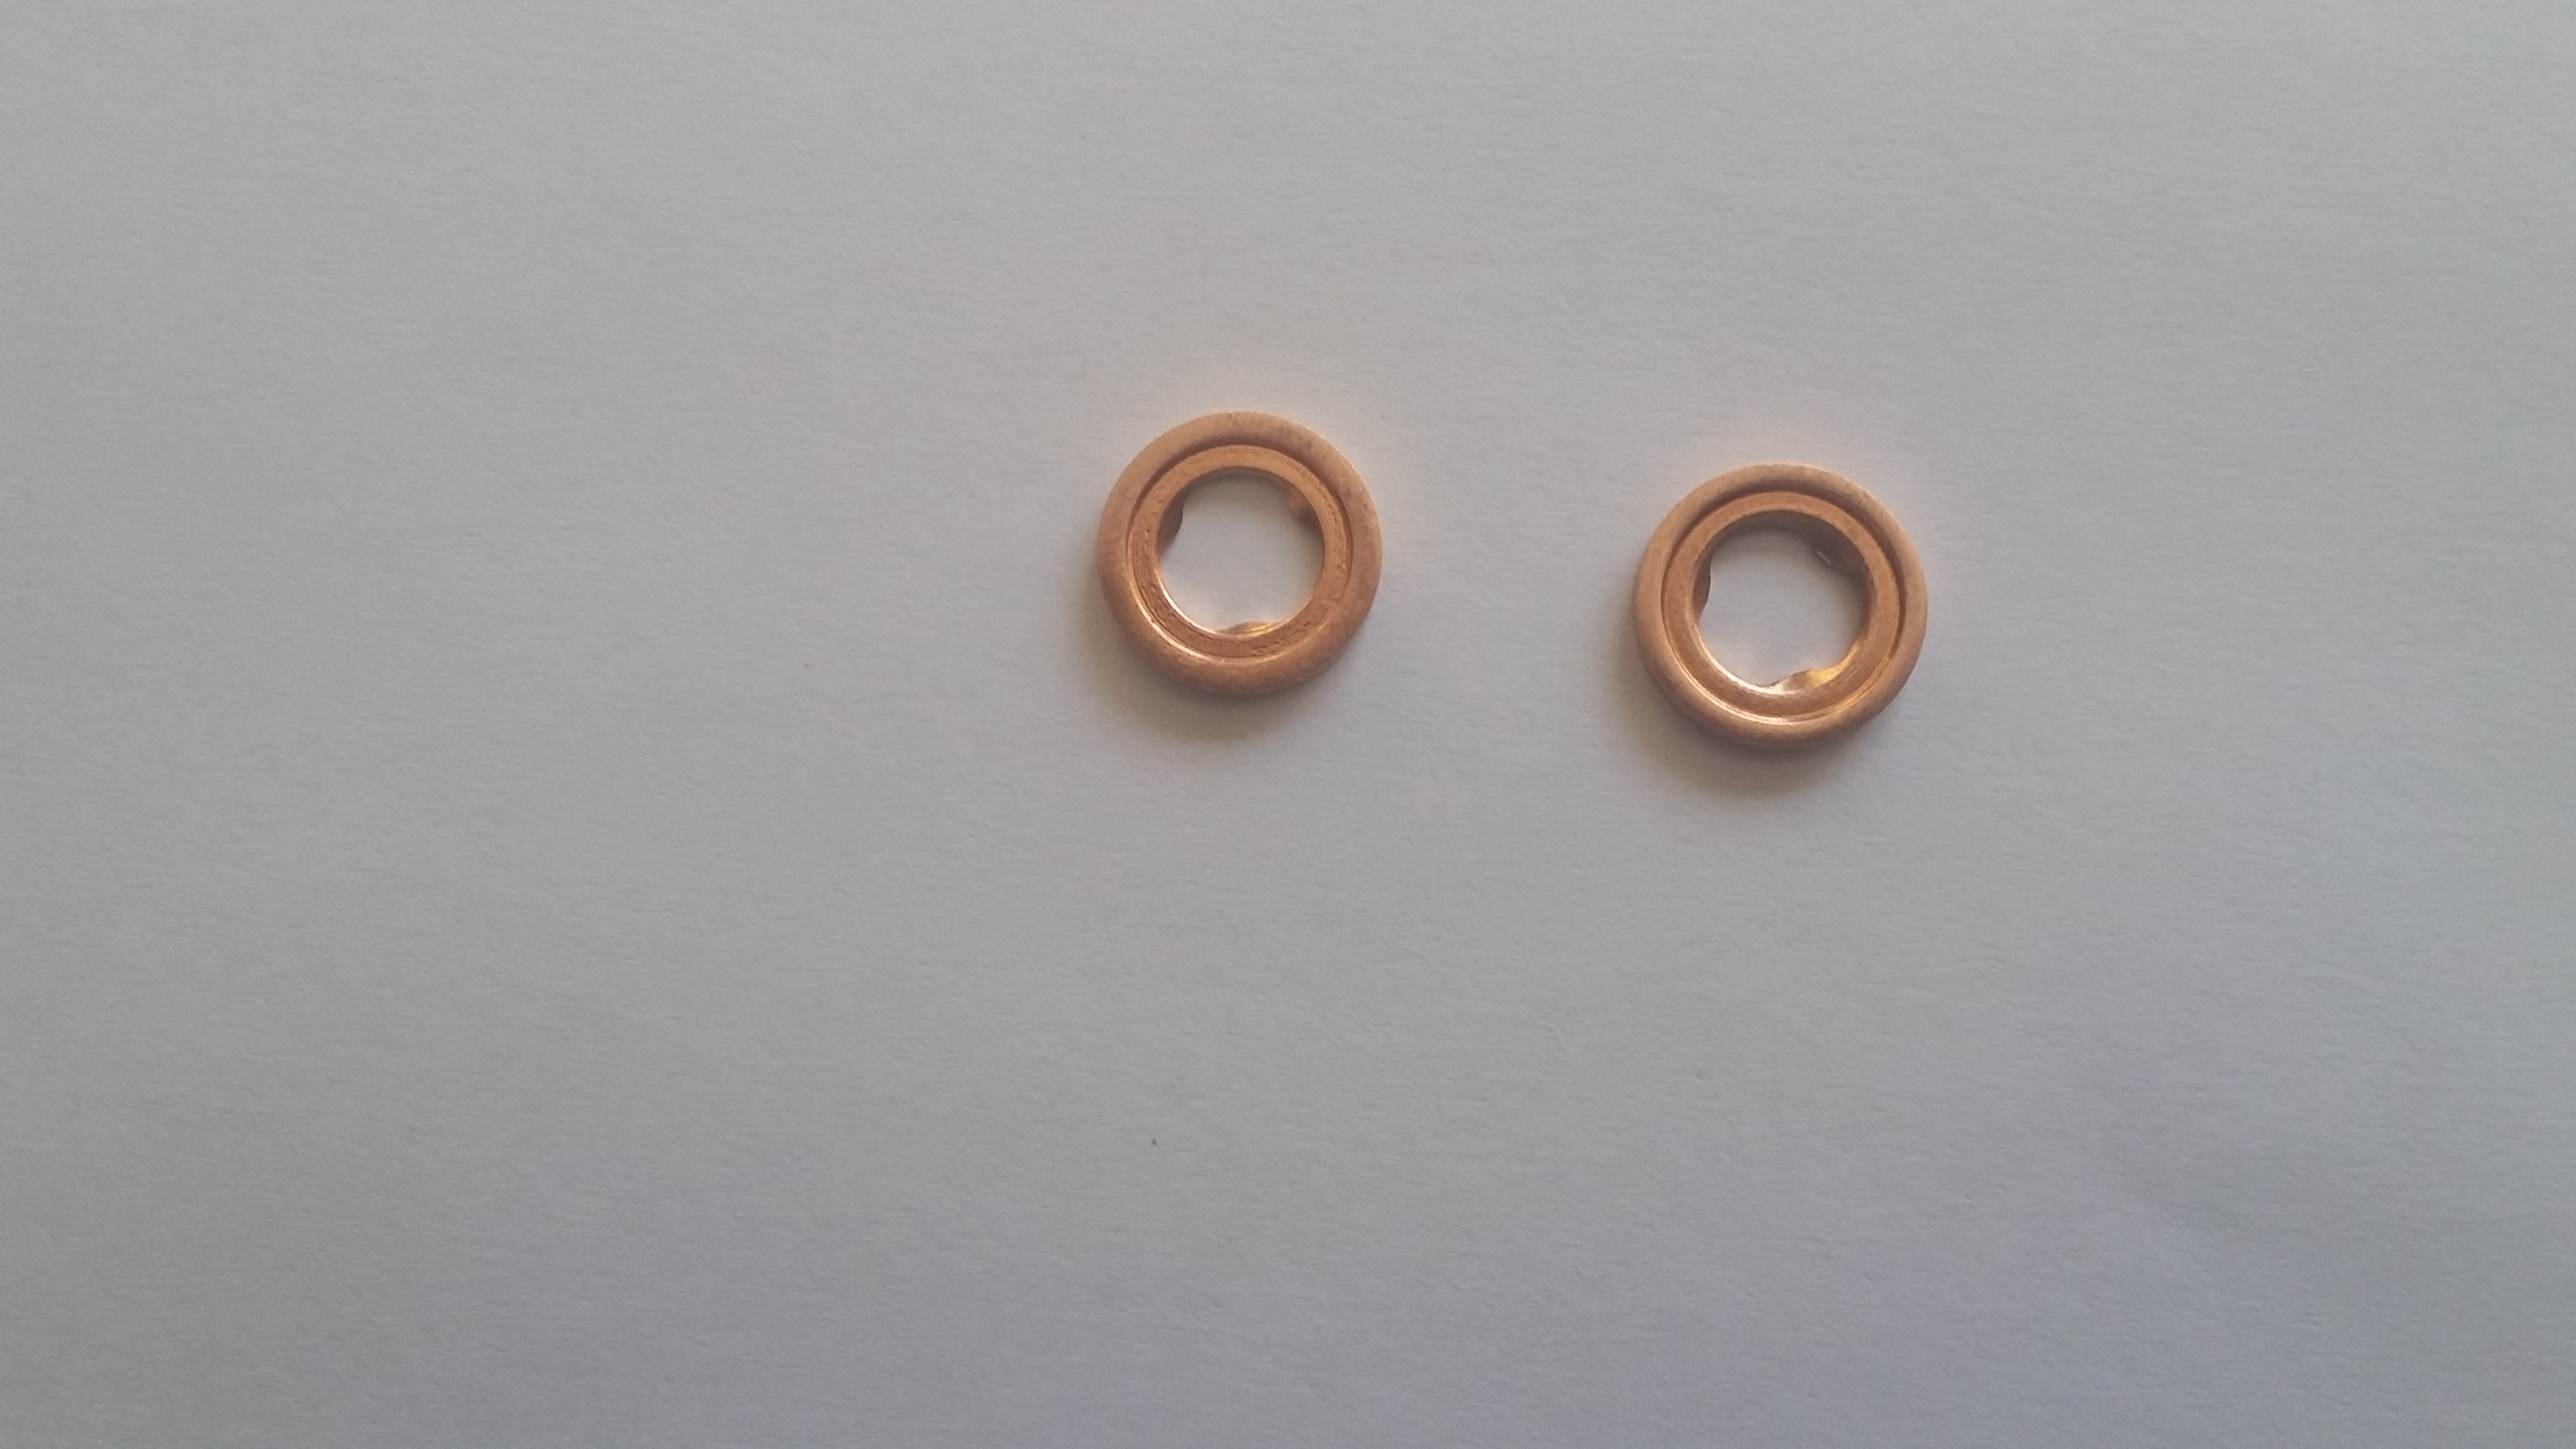 Buyukdemir - Seal Ring, Nozzle Holder ( Copper Heat Shield )